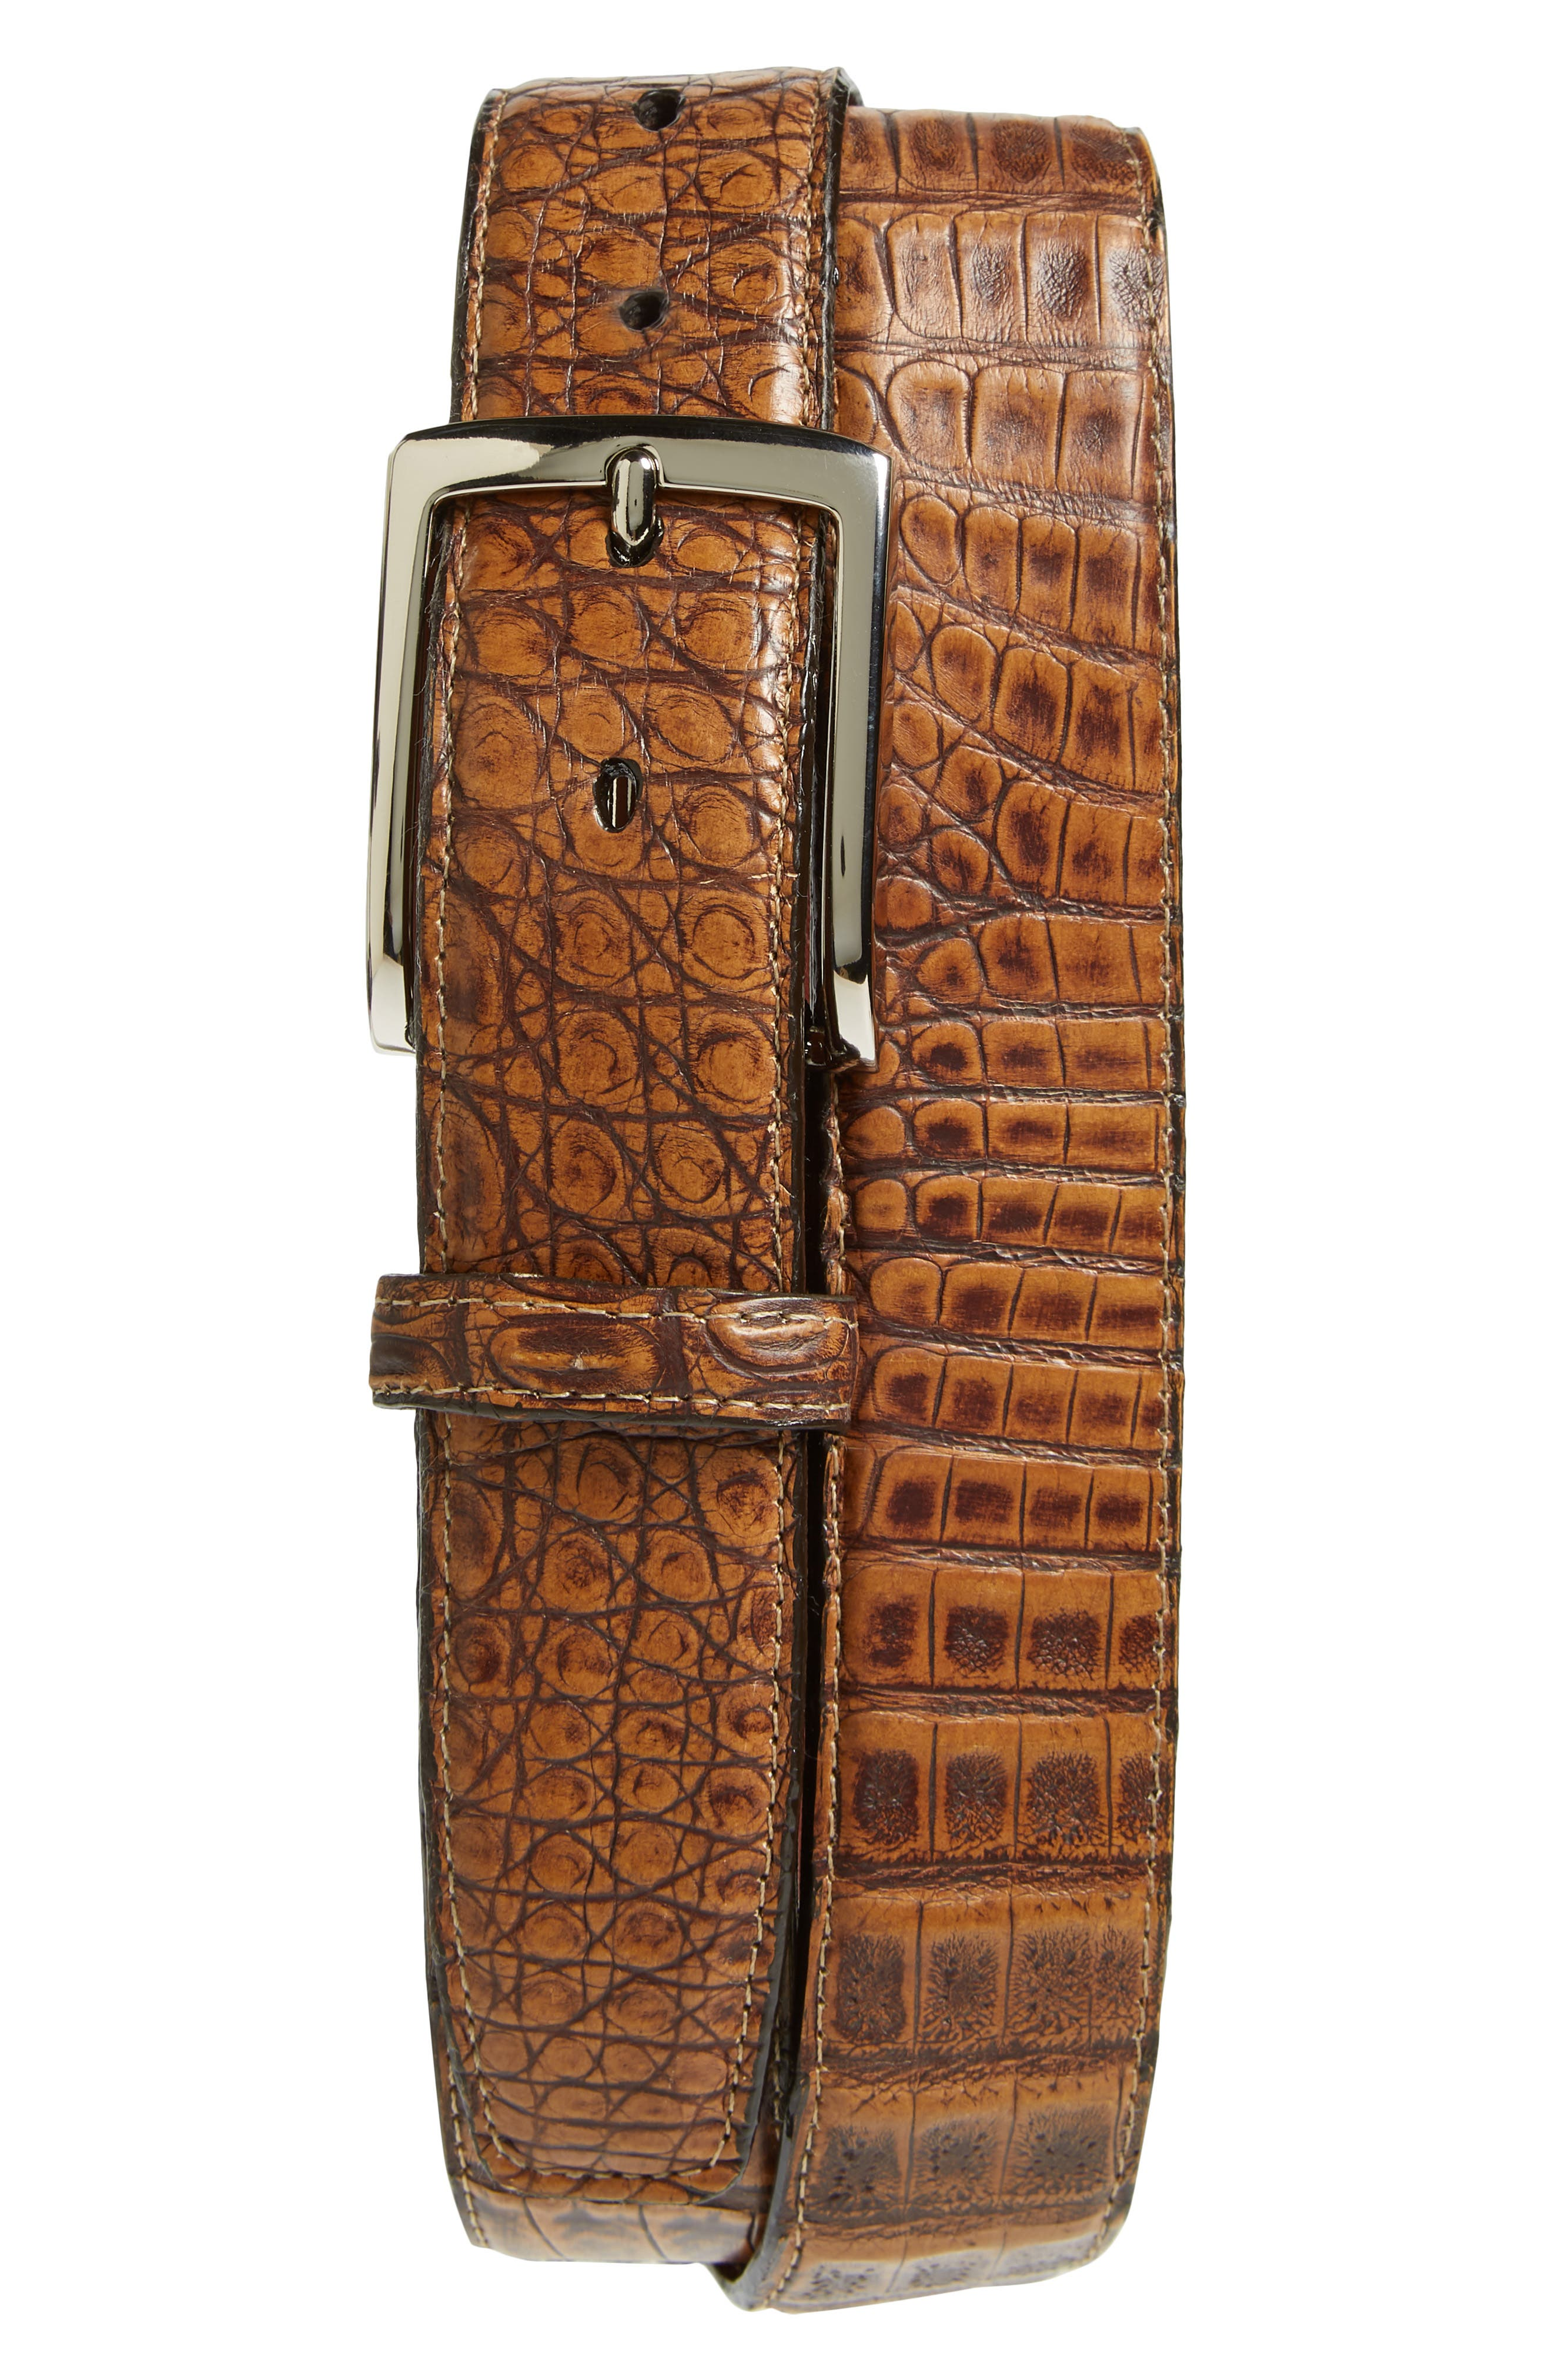 Caiman leather adds exotic texture to a belt fitted with high-shine hardware. Style Name: Torino Caiman Leather Belt. Style Number: 5940585. Available in stores.